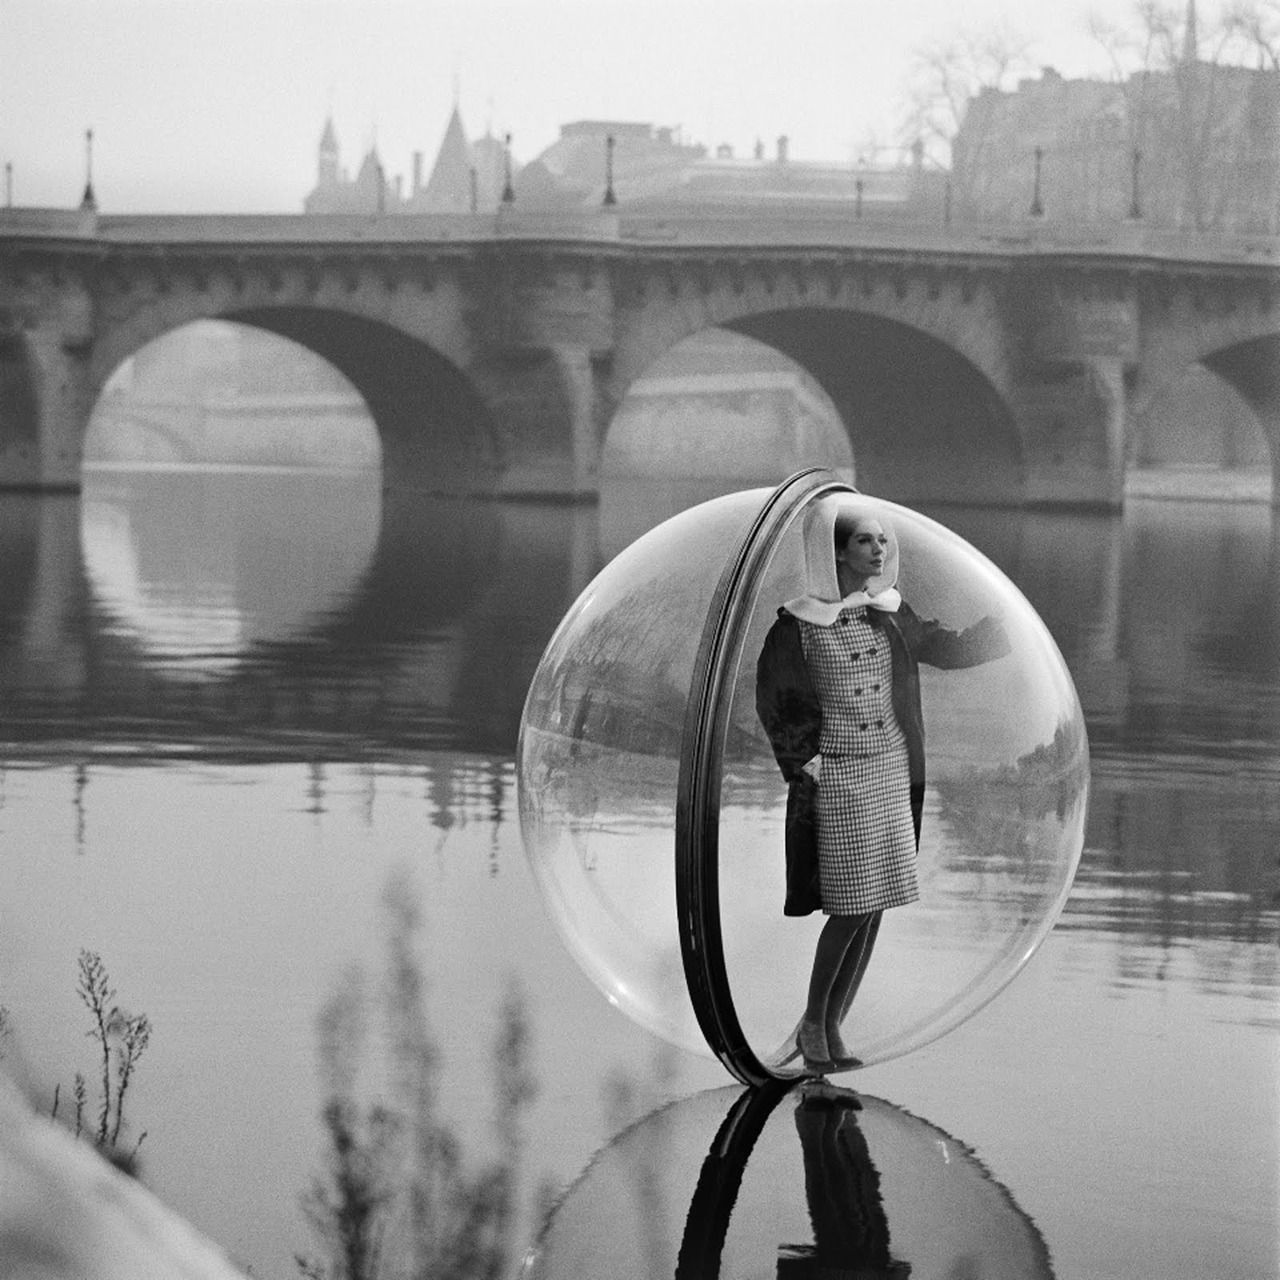 In 1963 melvin sokolsky shot these iconic images for harper s